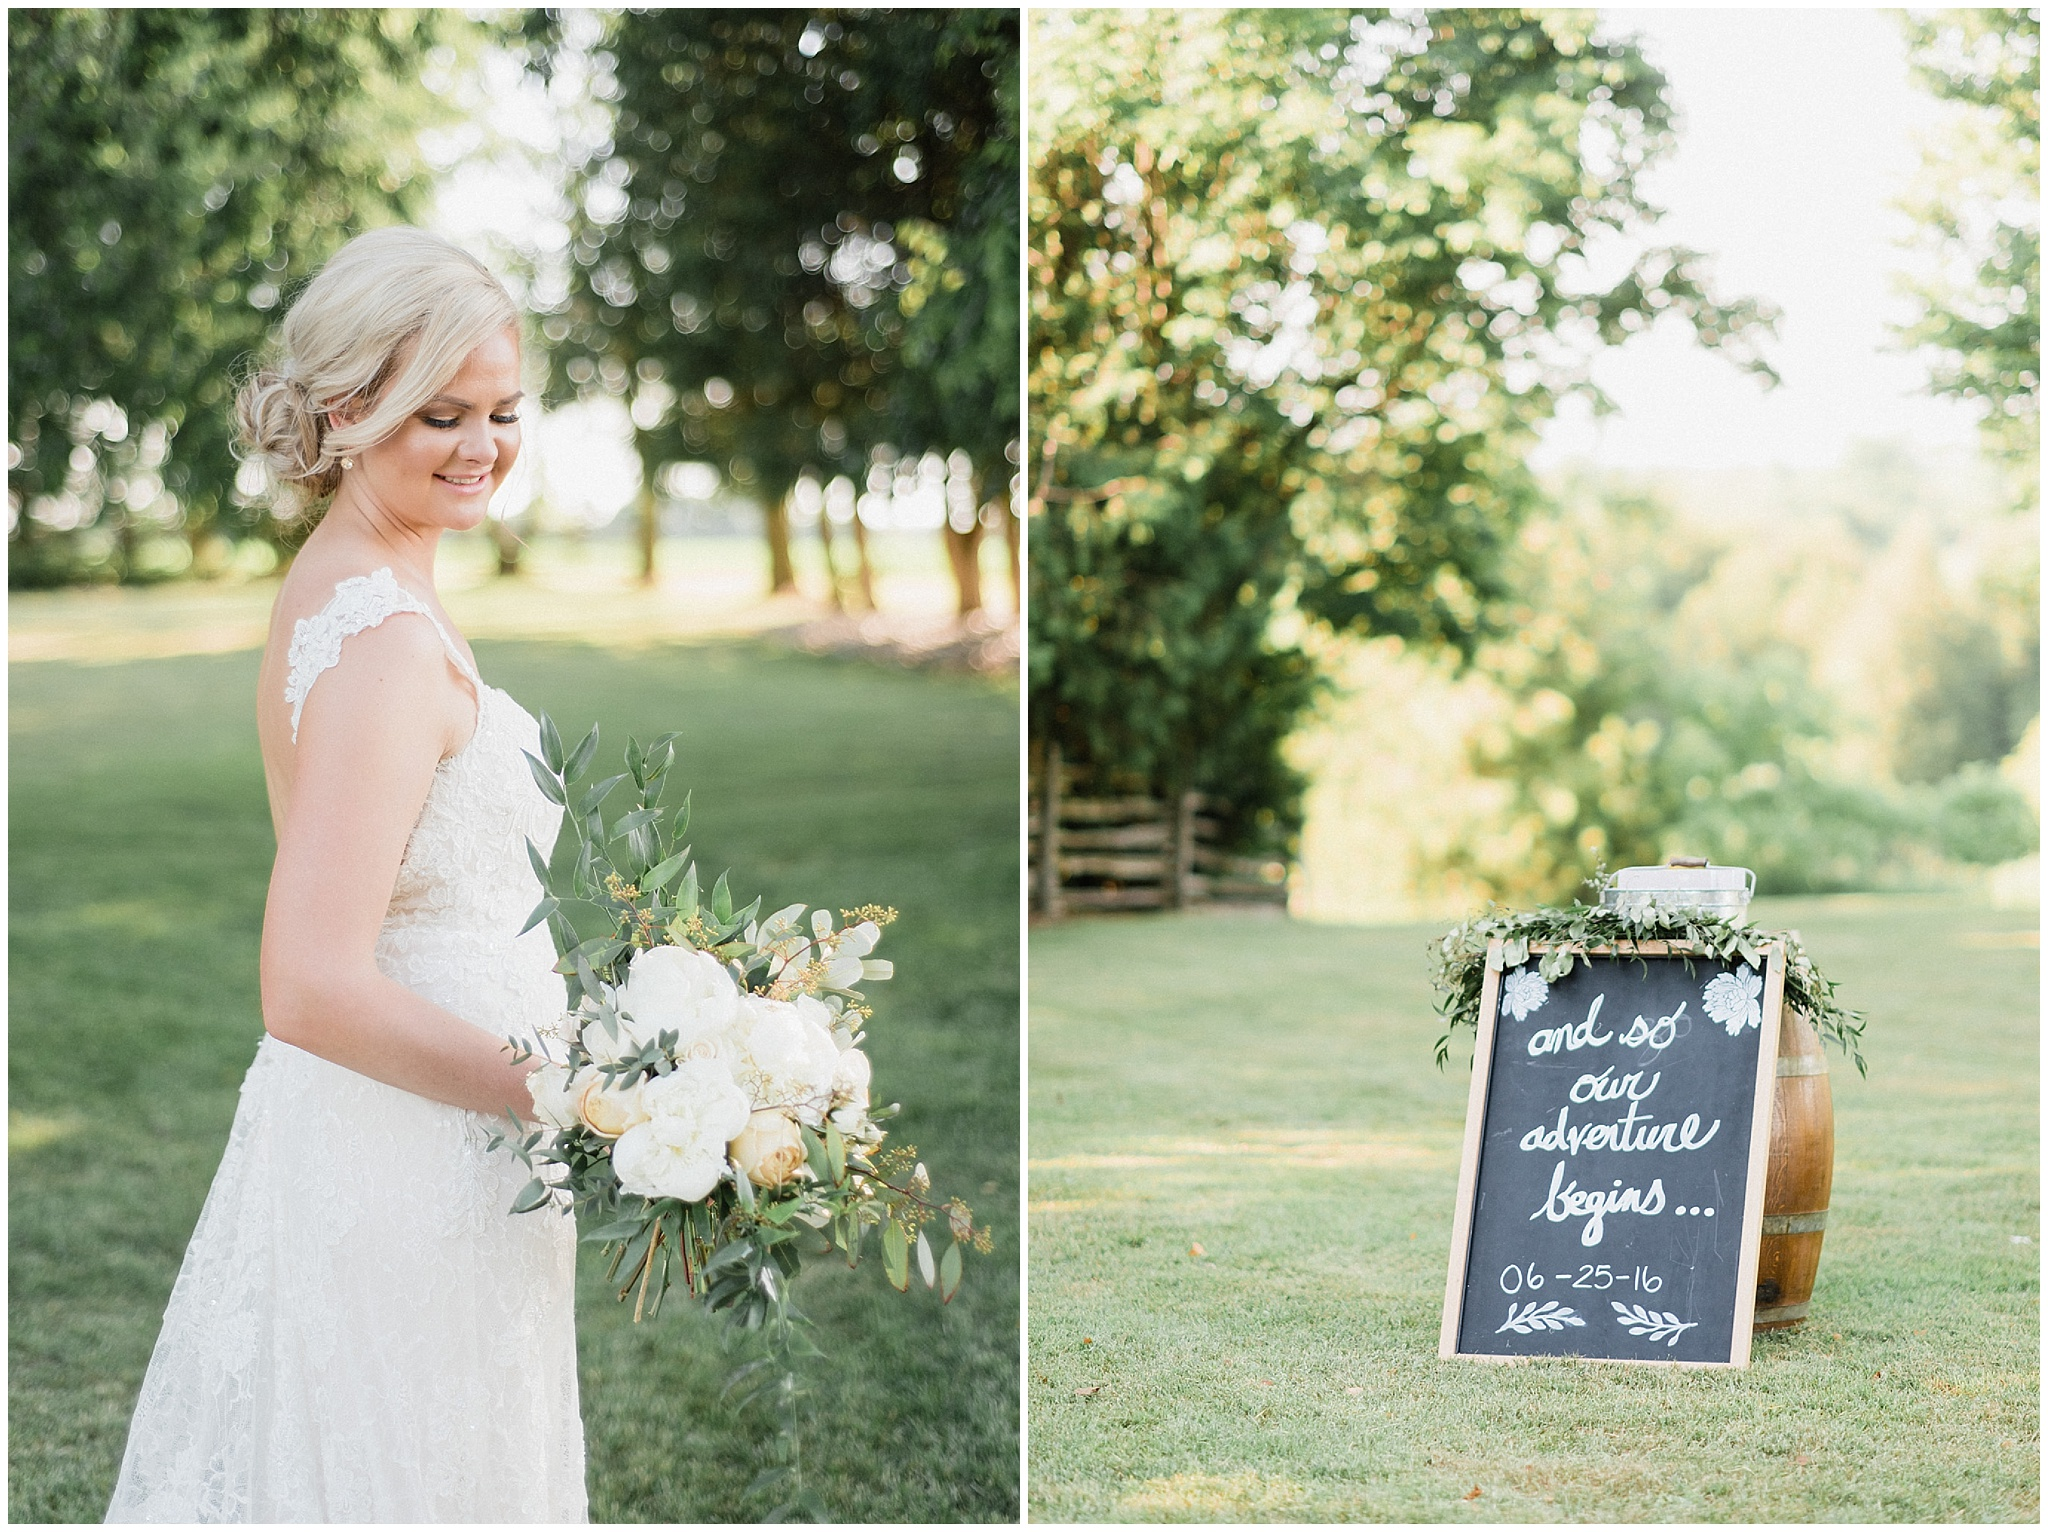 Super cute chalkboard ceremony sign 'And so our adventure begins' | Tent wedding on family farm in Guelph, Ontario by Jenn Kavanagh Photography